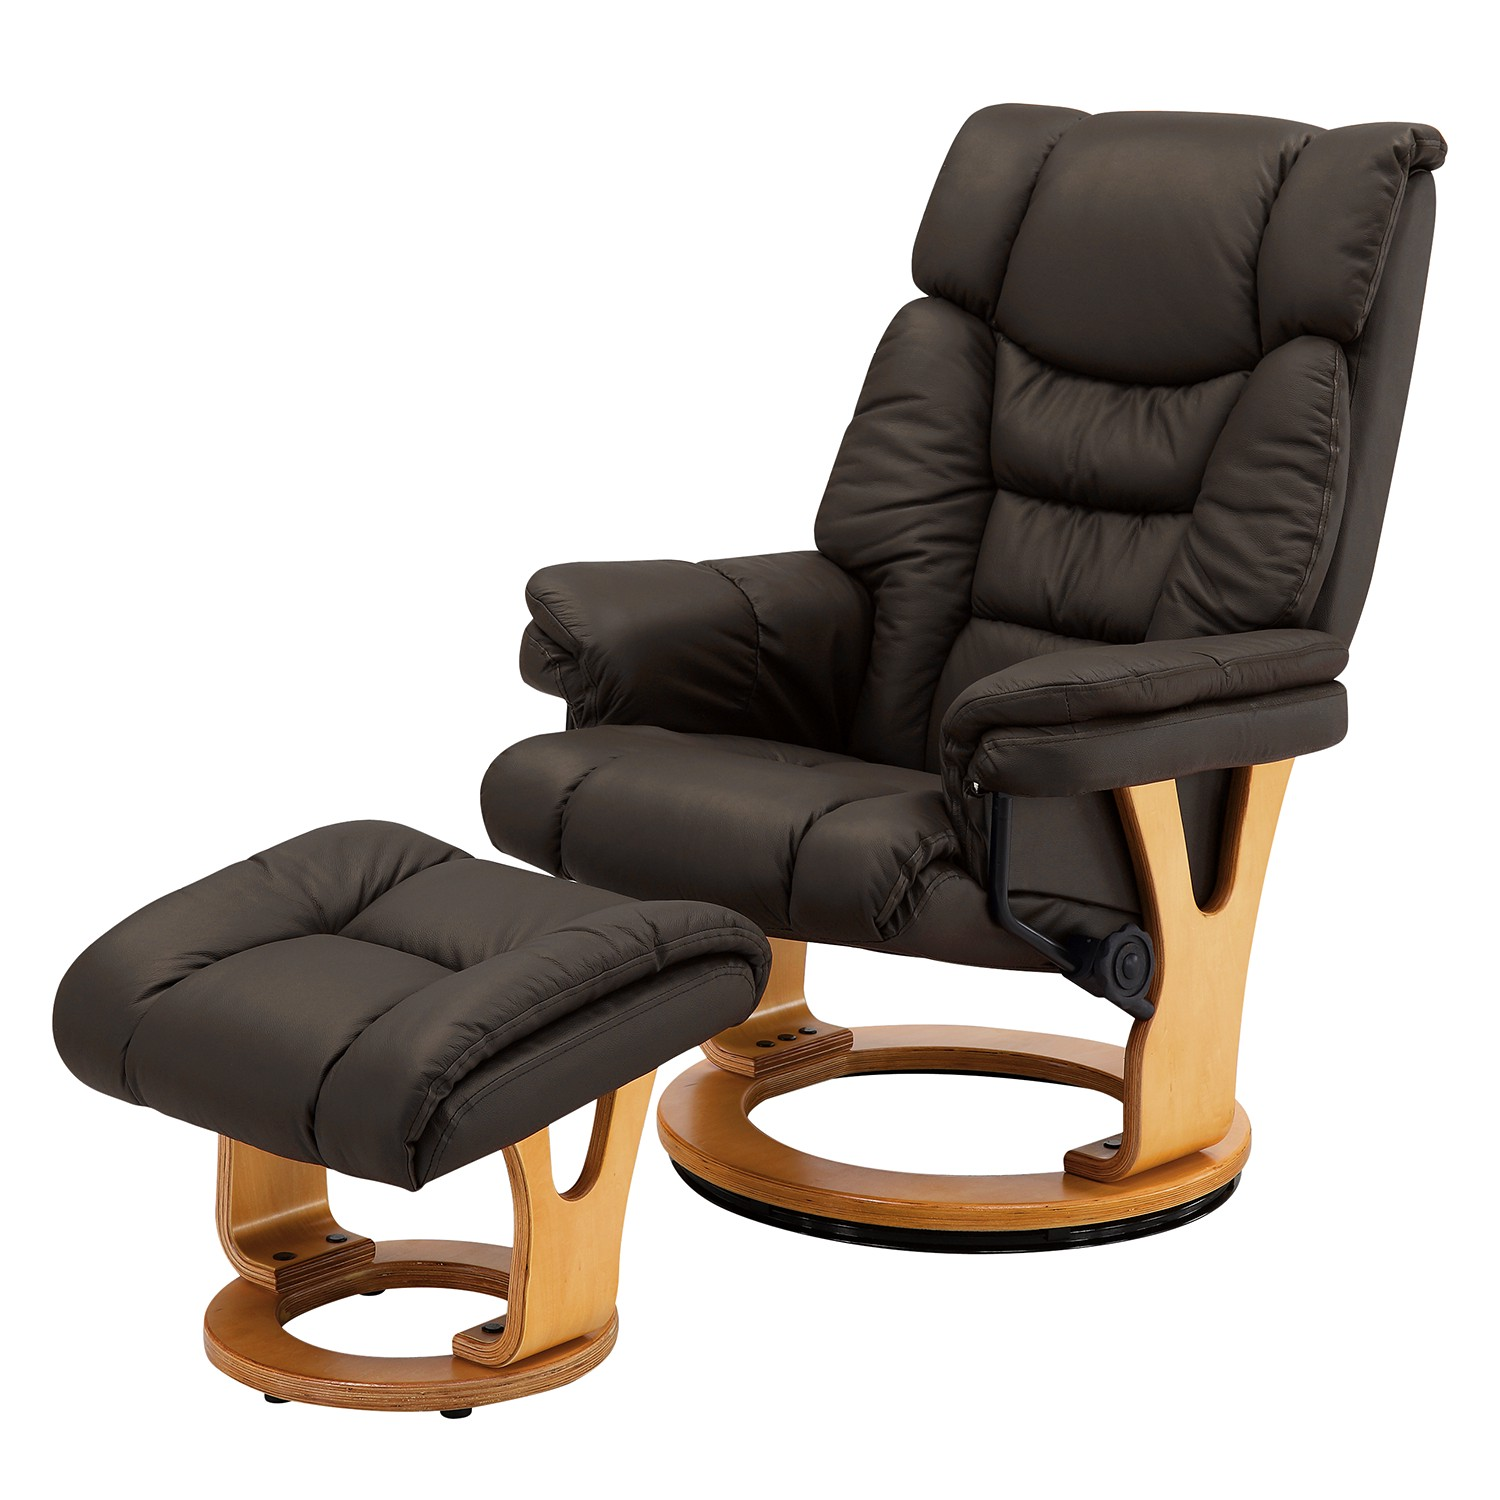 Fauteuil de relaxation Coverley